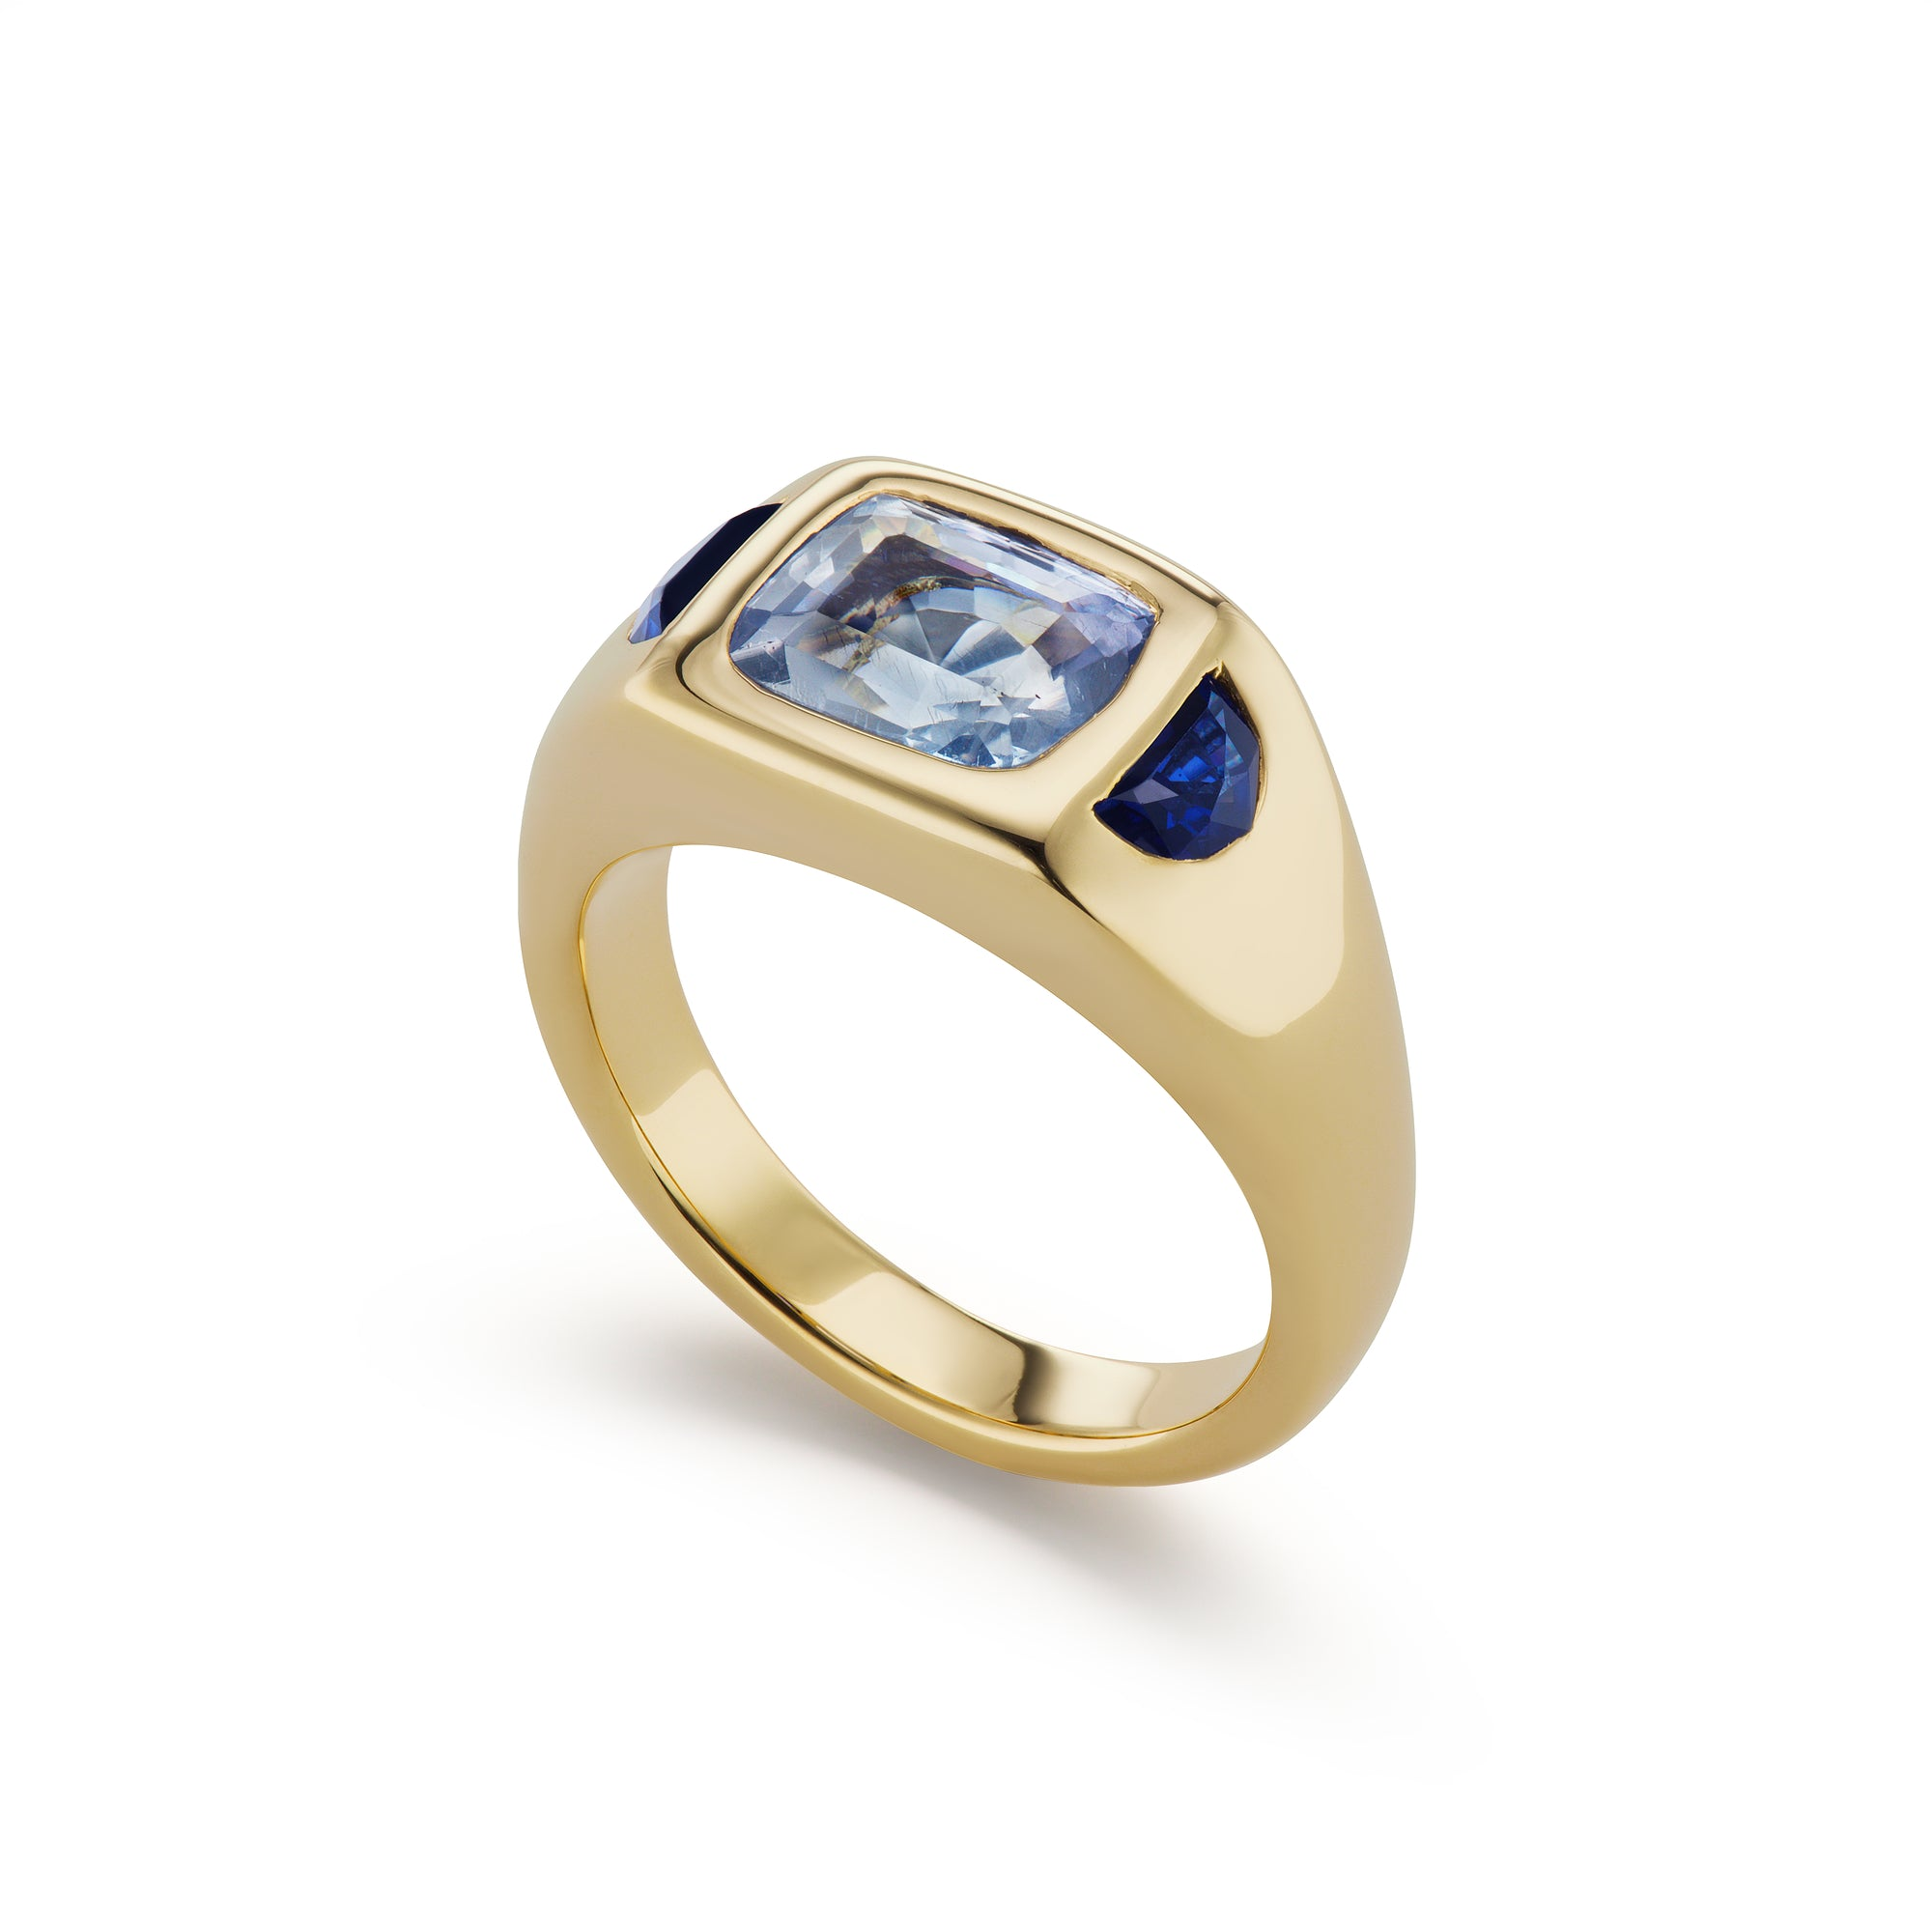 One-of-a-Kind Blue Sapphire Gypsy Ring with Half-Moon Sides